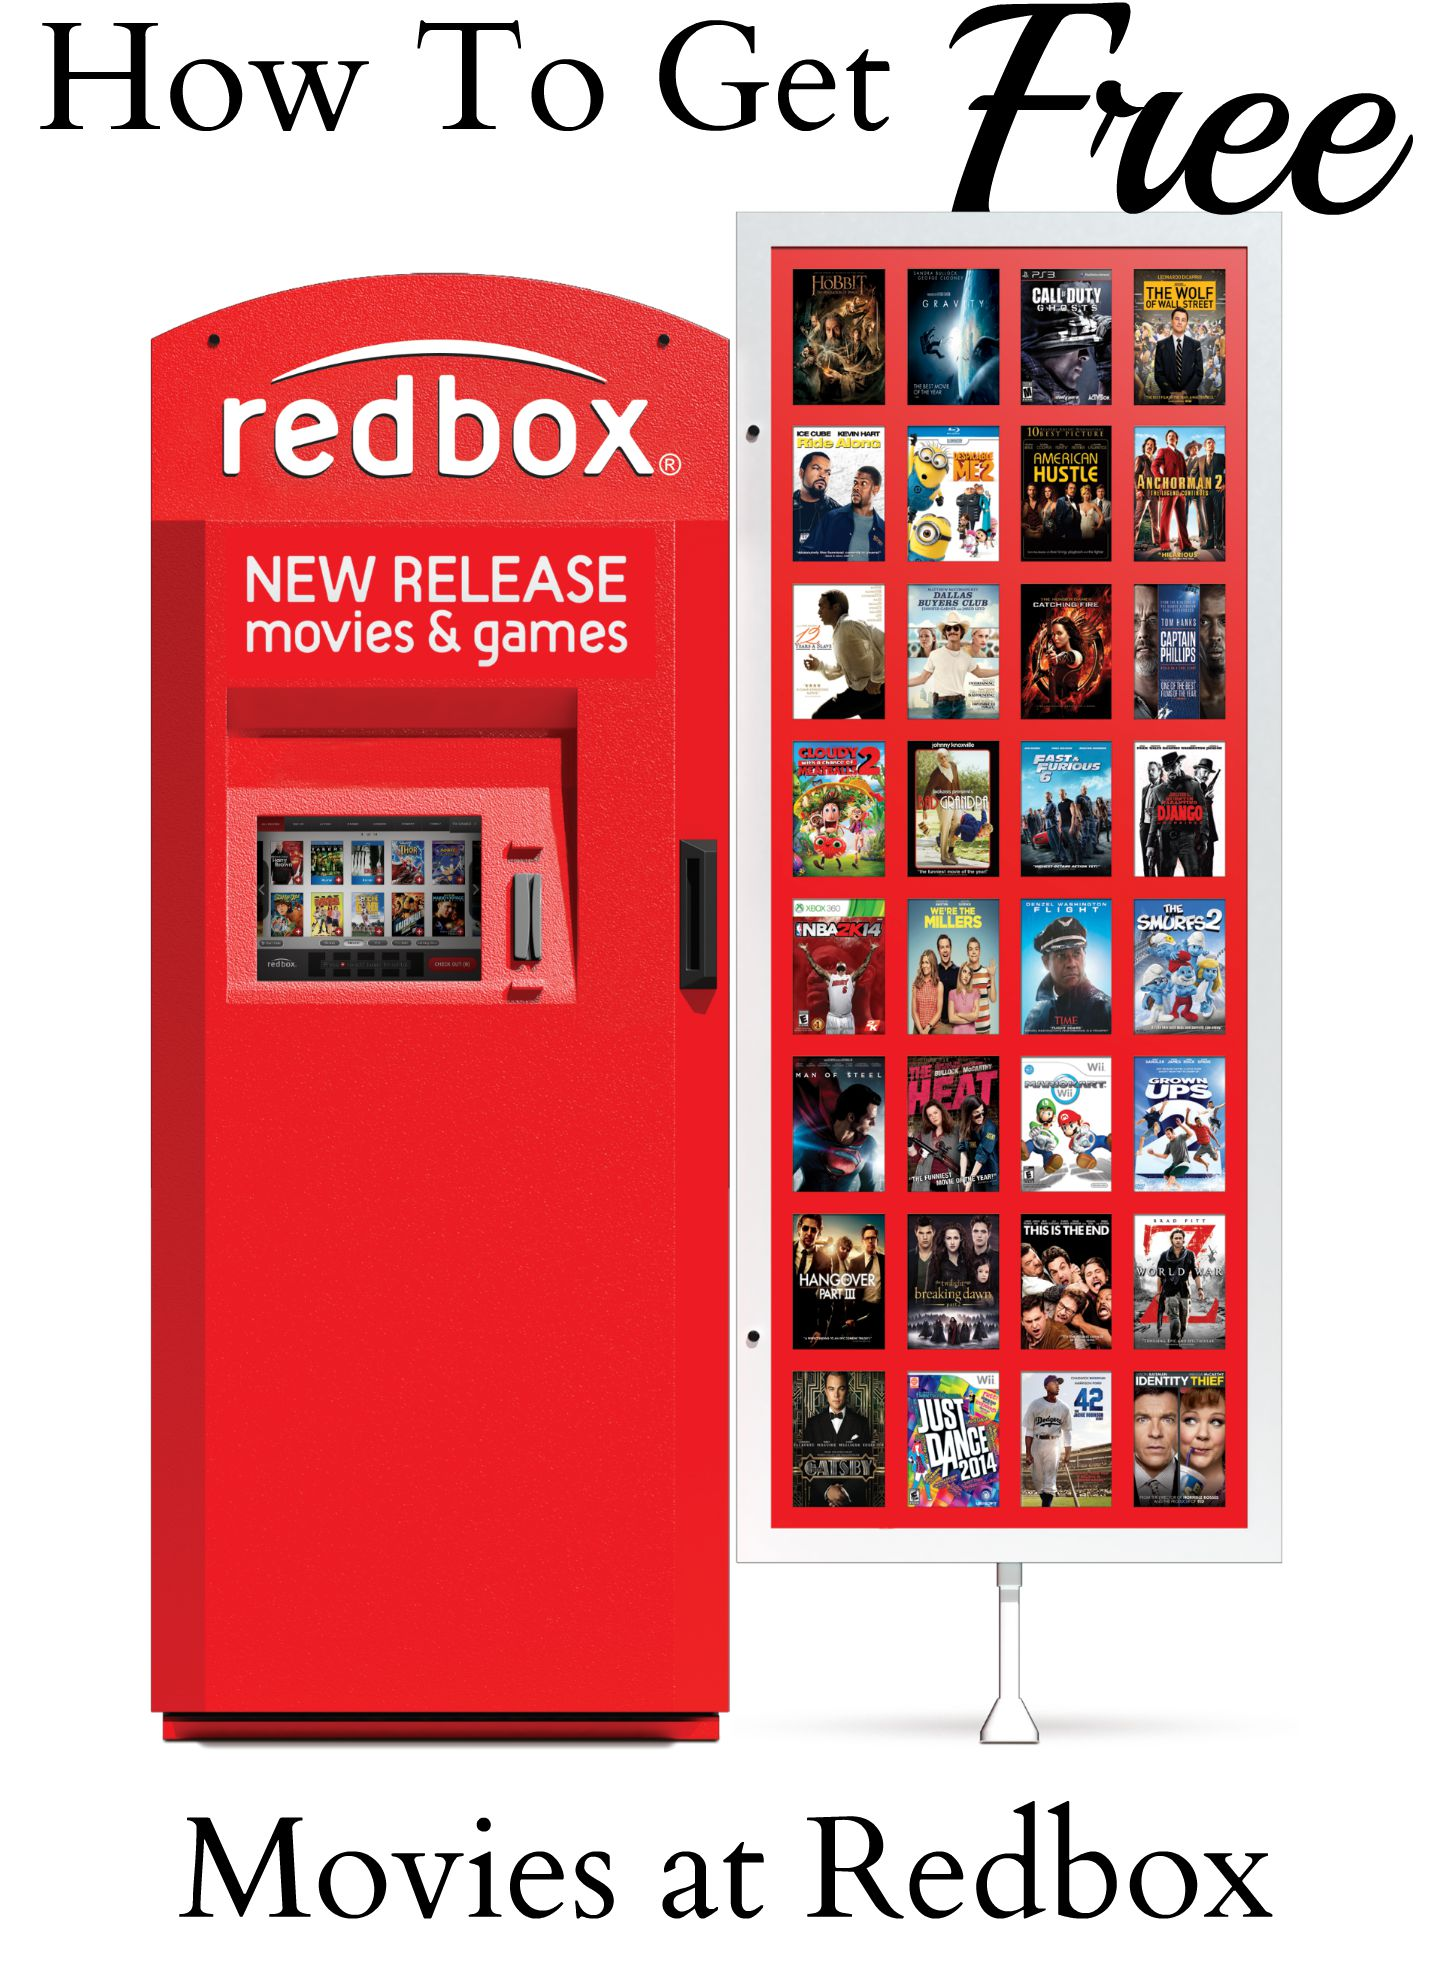 Although Redbox codes are the most popular way to watch new movies for free, there are many ways using Redbox benefits your wallet. Your local Redbox kiosk is .